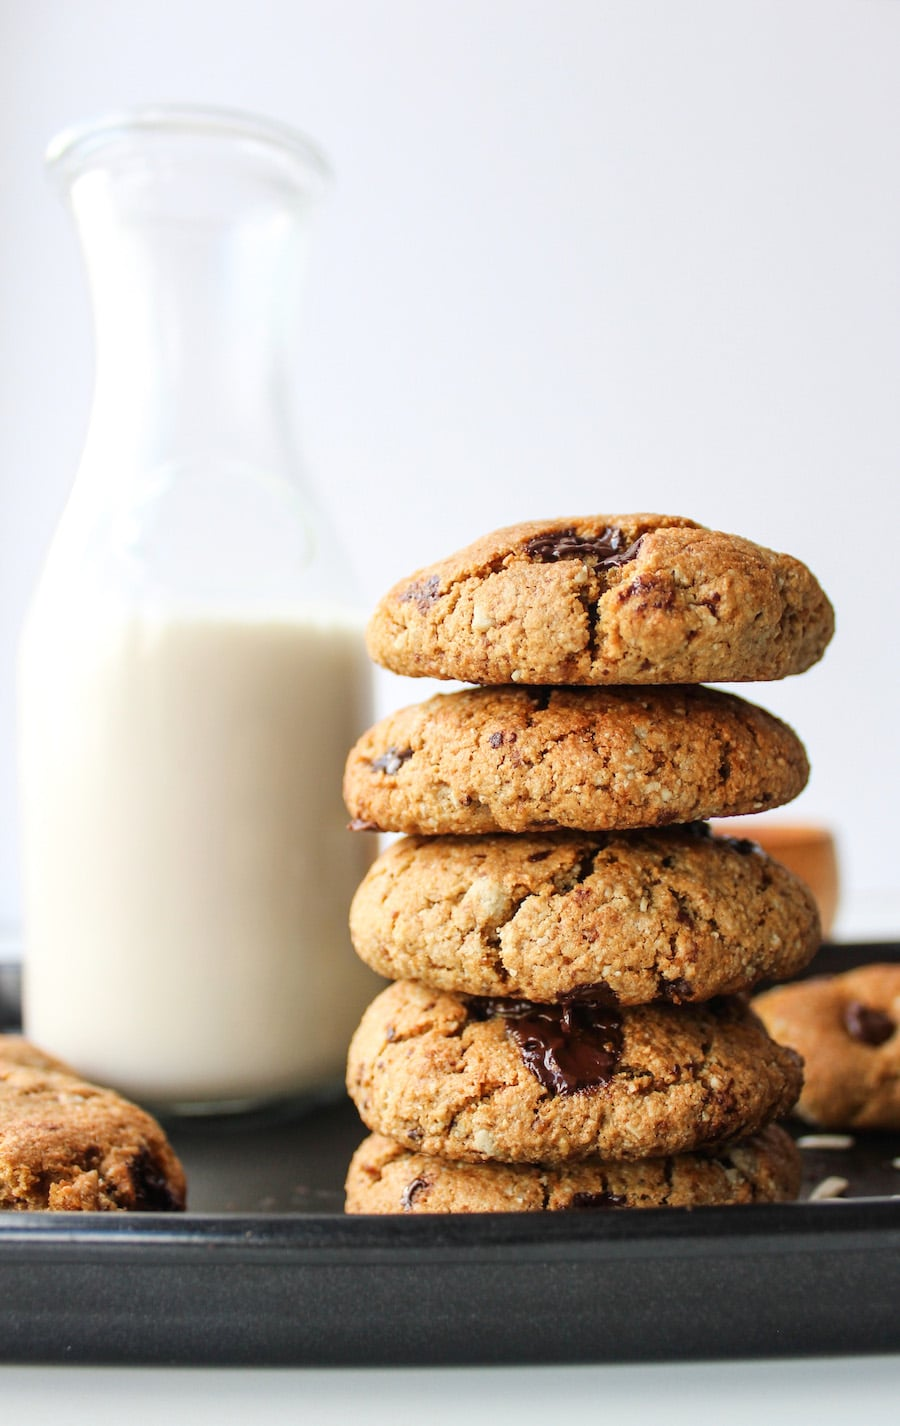 Sunflower Seed Paleo Chocolate Chip Cookies - nut free, dairy free, with egg free options